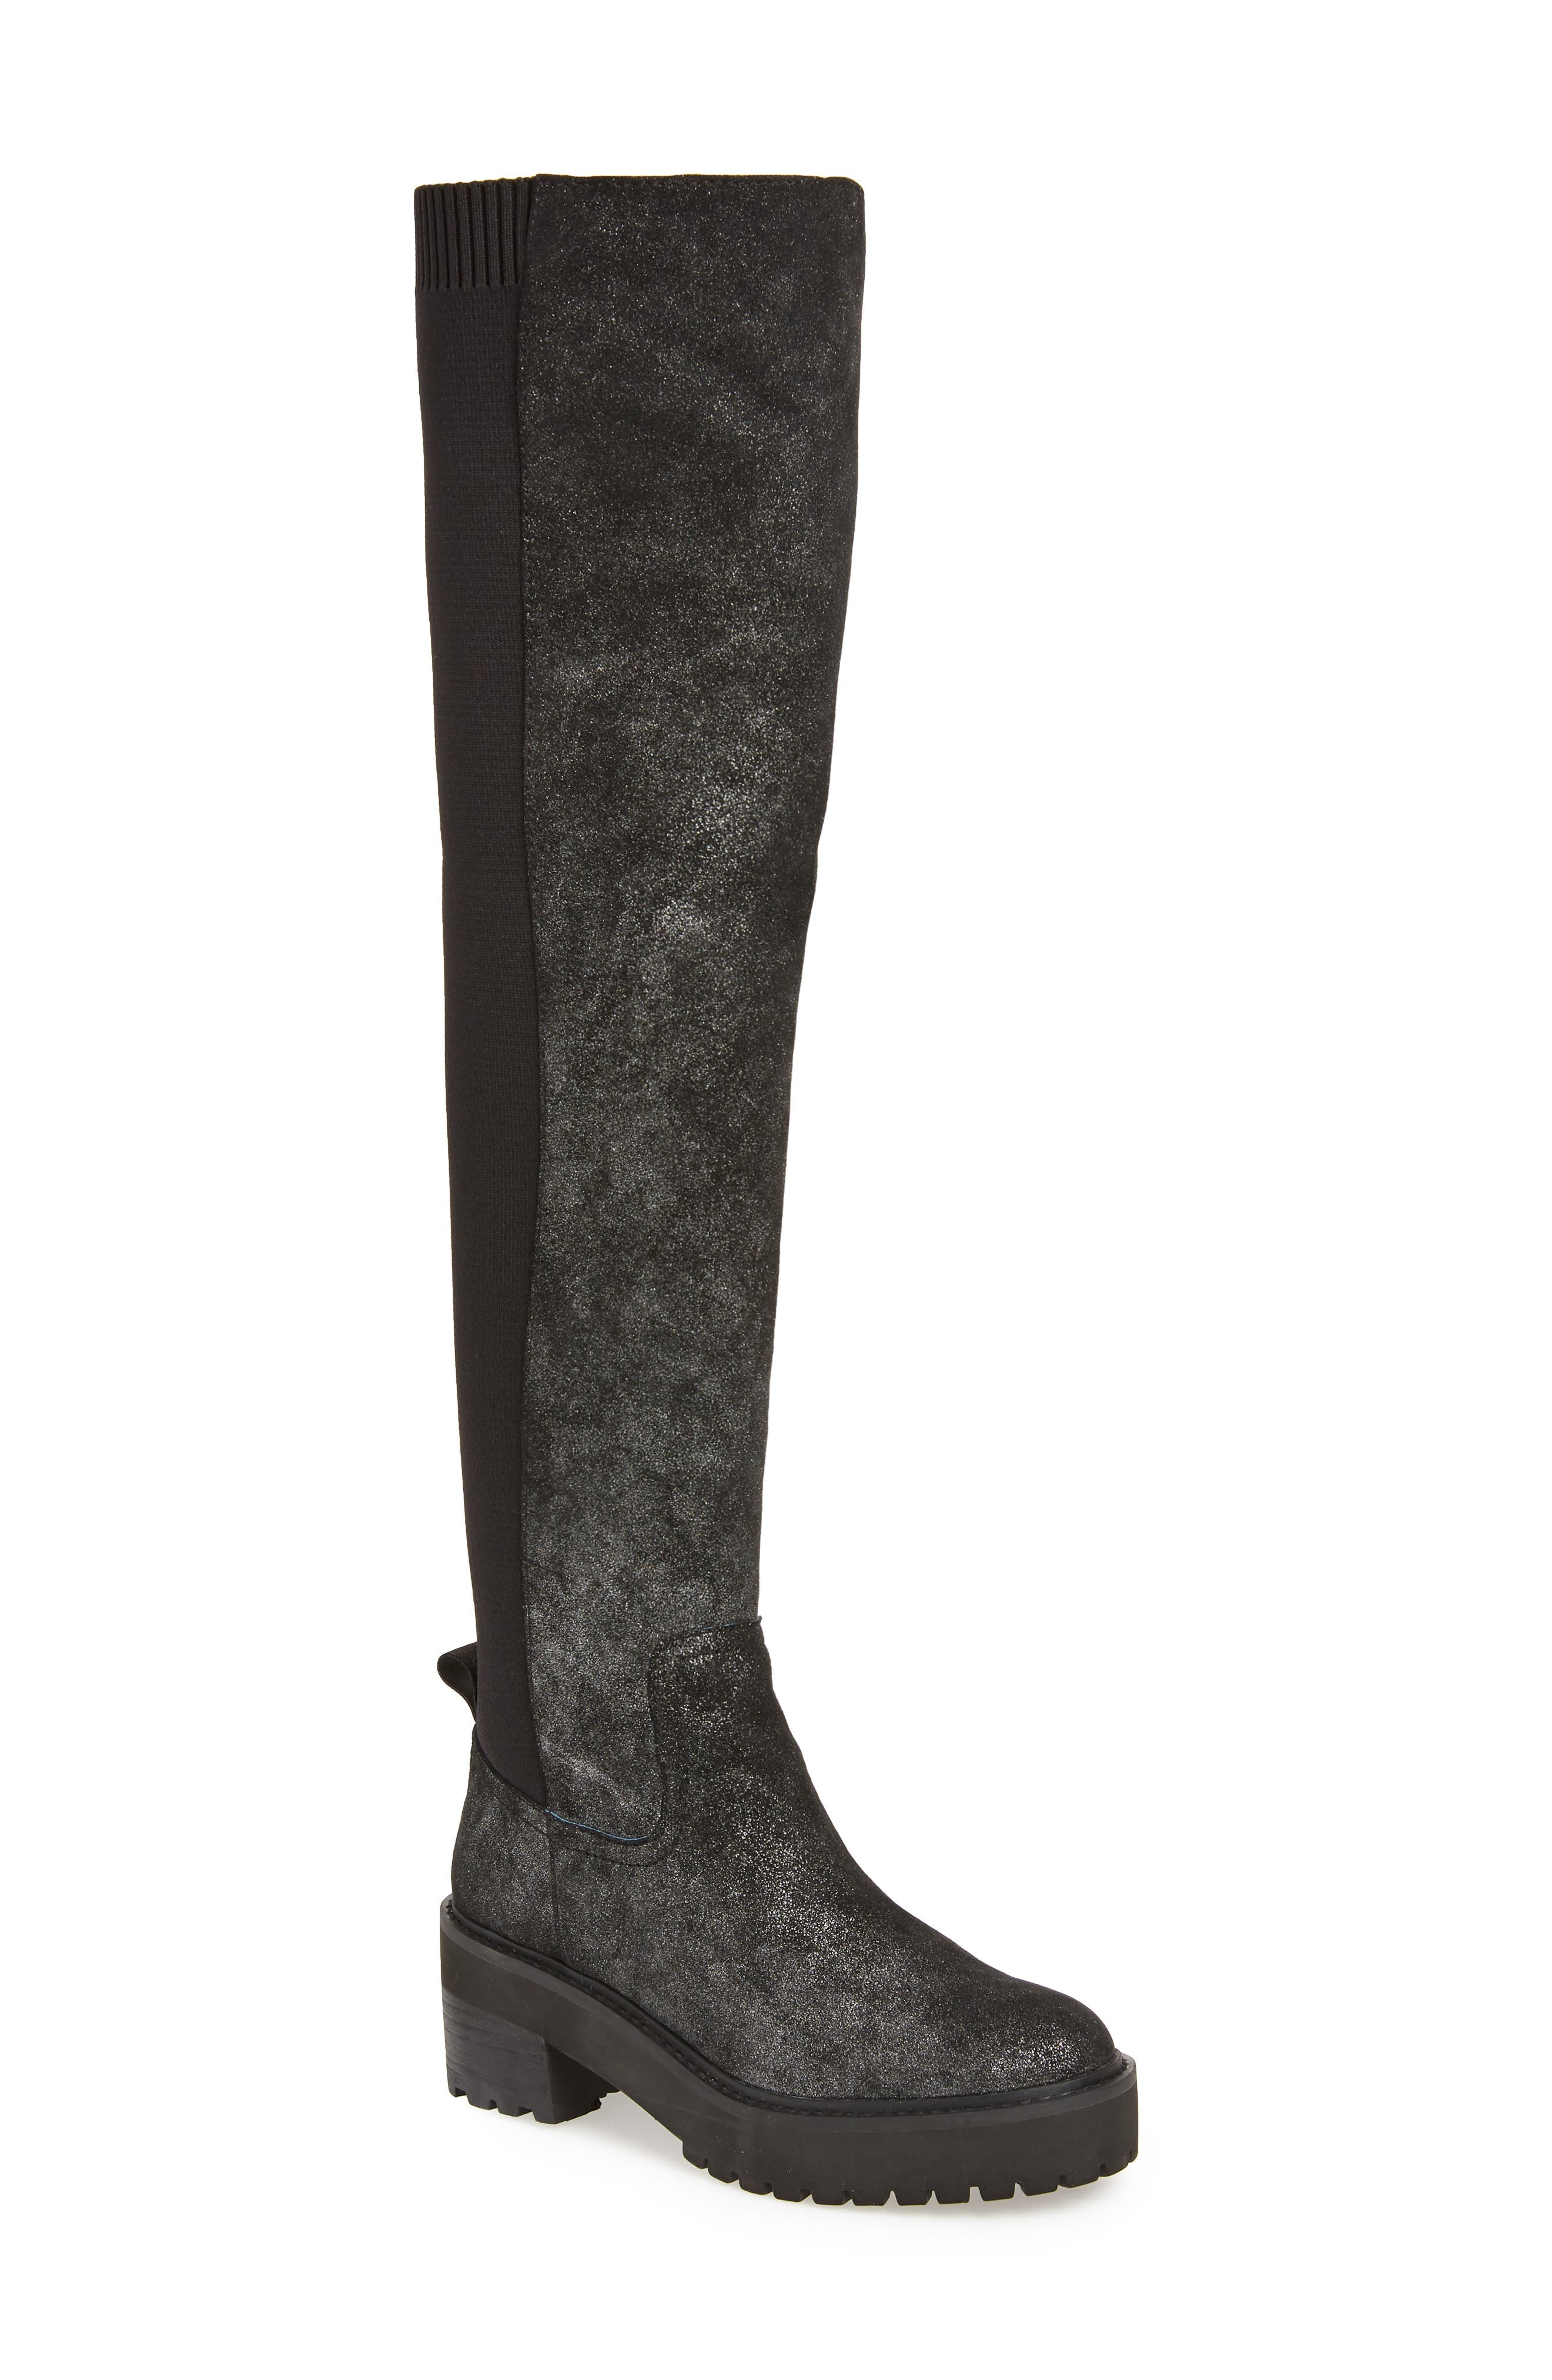 Linea Paolo Lindy Over The Knee Boot